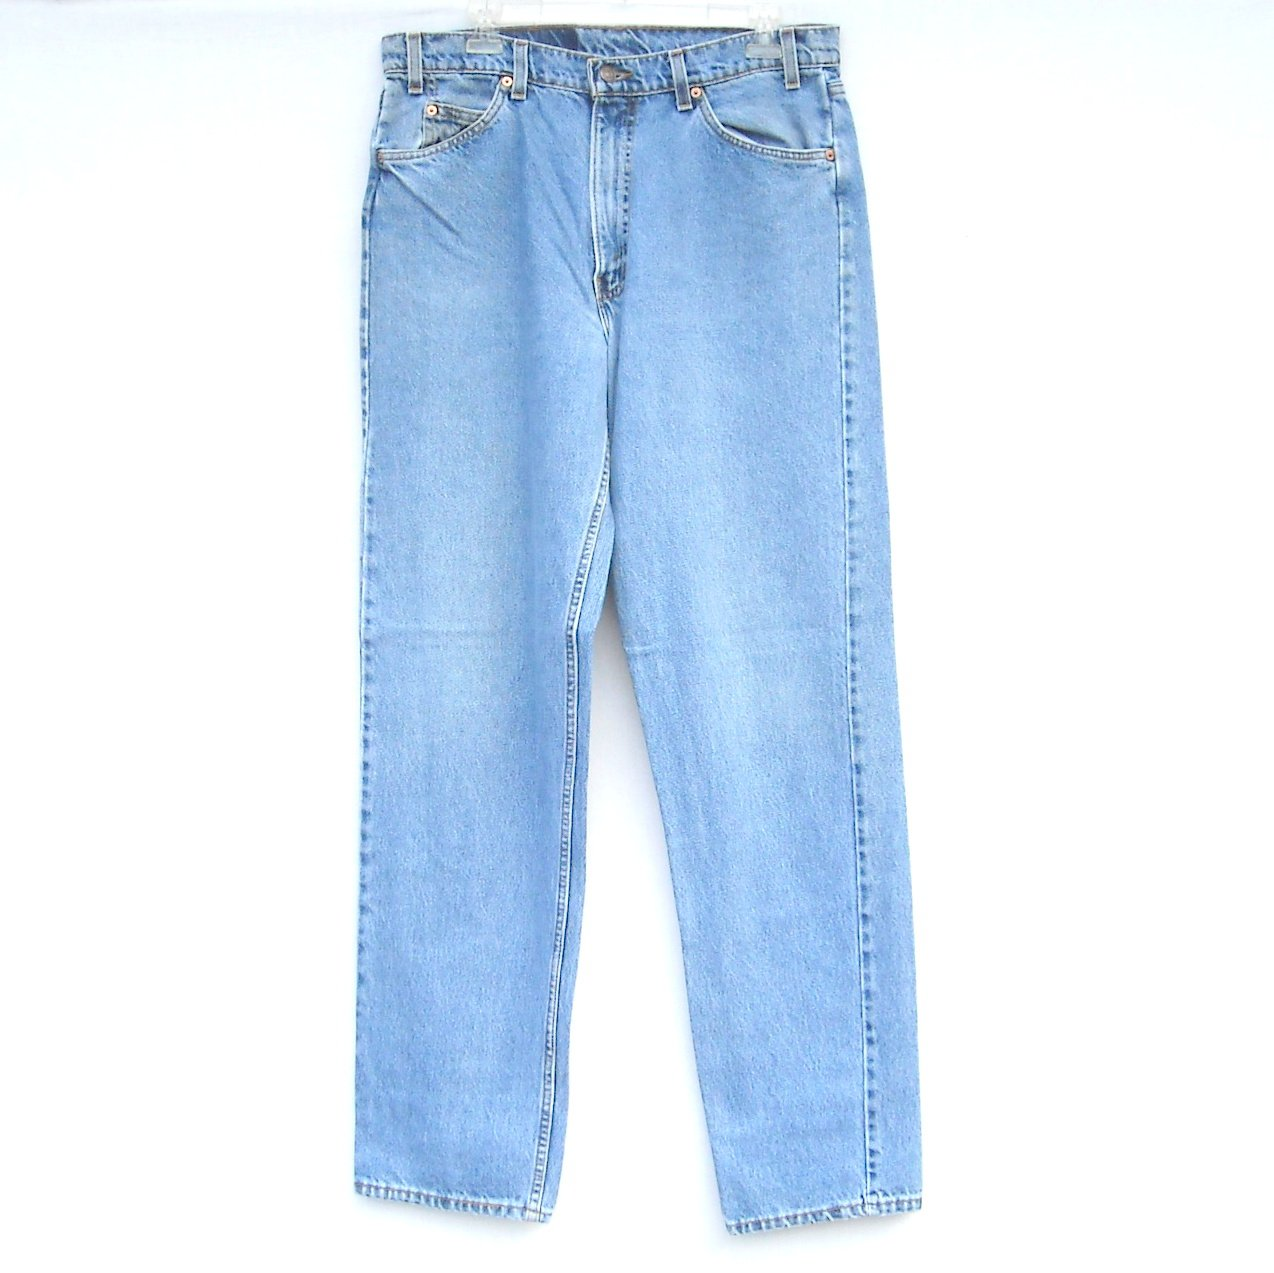 Levi Strauss 555 Relaxed Straight Blue Jeans Size 36 X 34